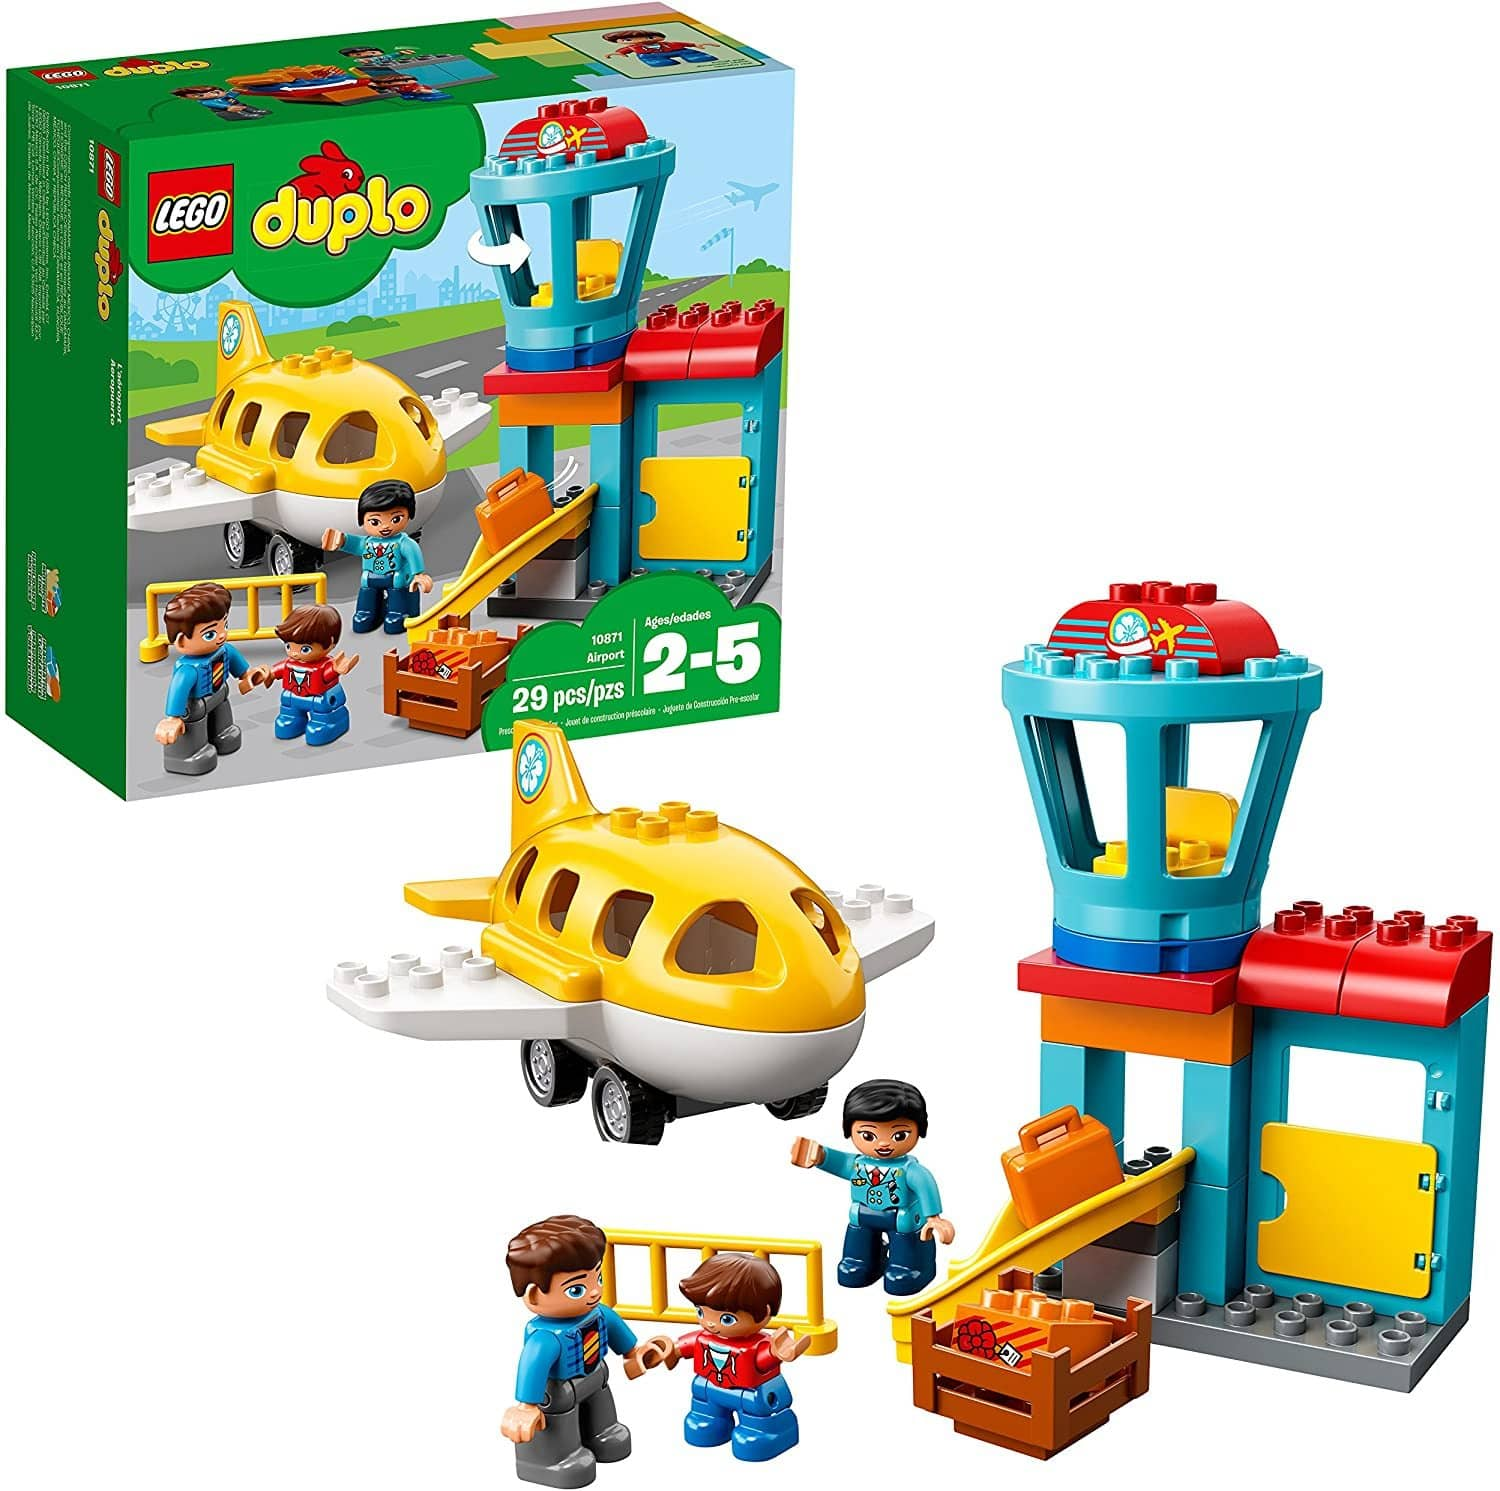 LEGO 10871: DUPLO: Airport (29 Pieces)-Kidding Around NYC